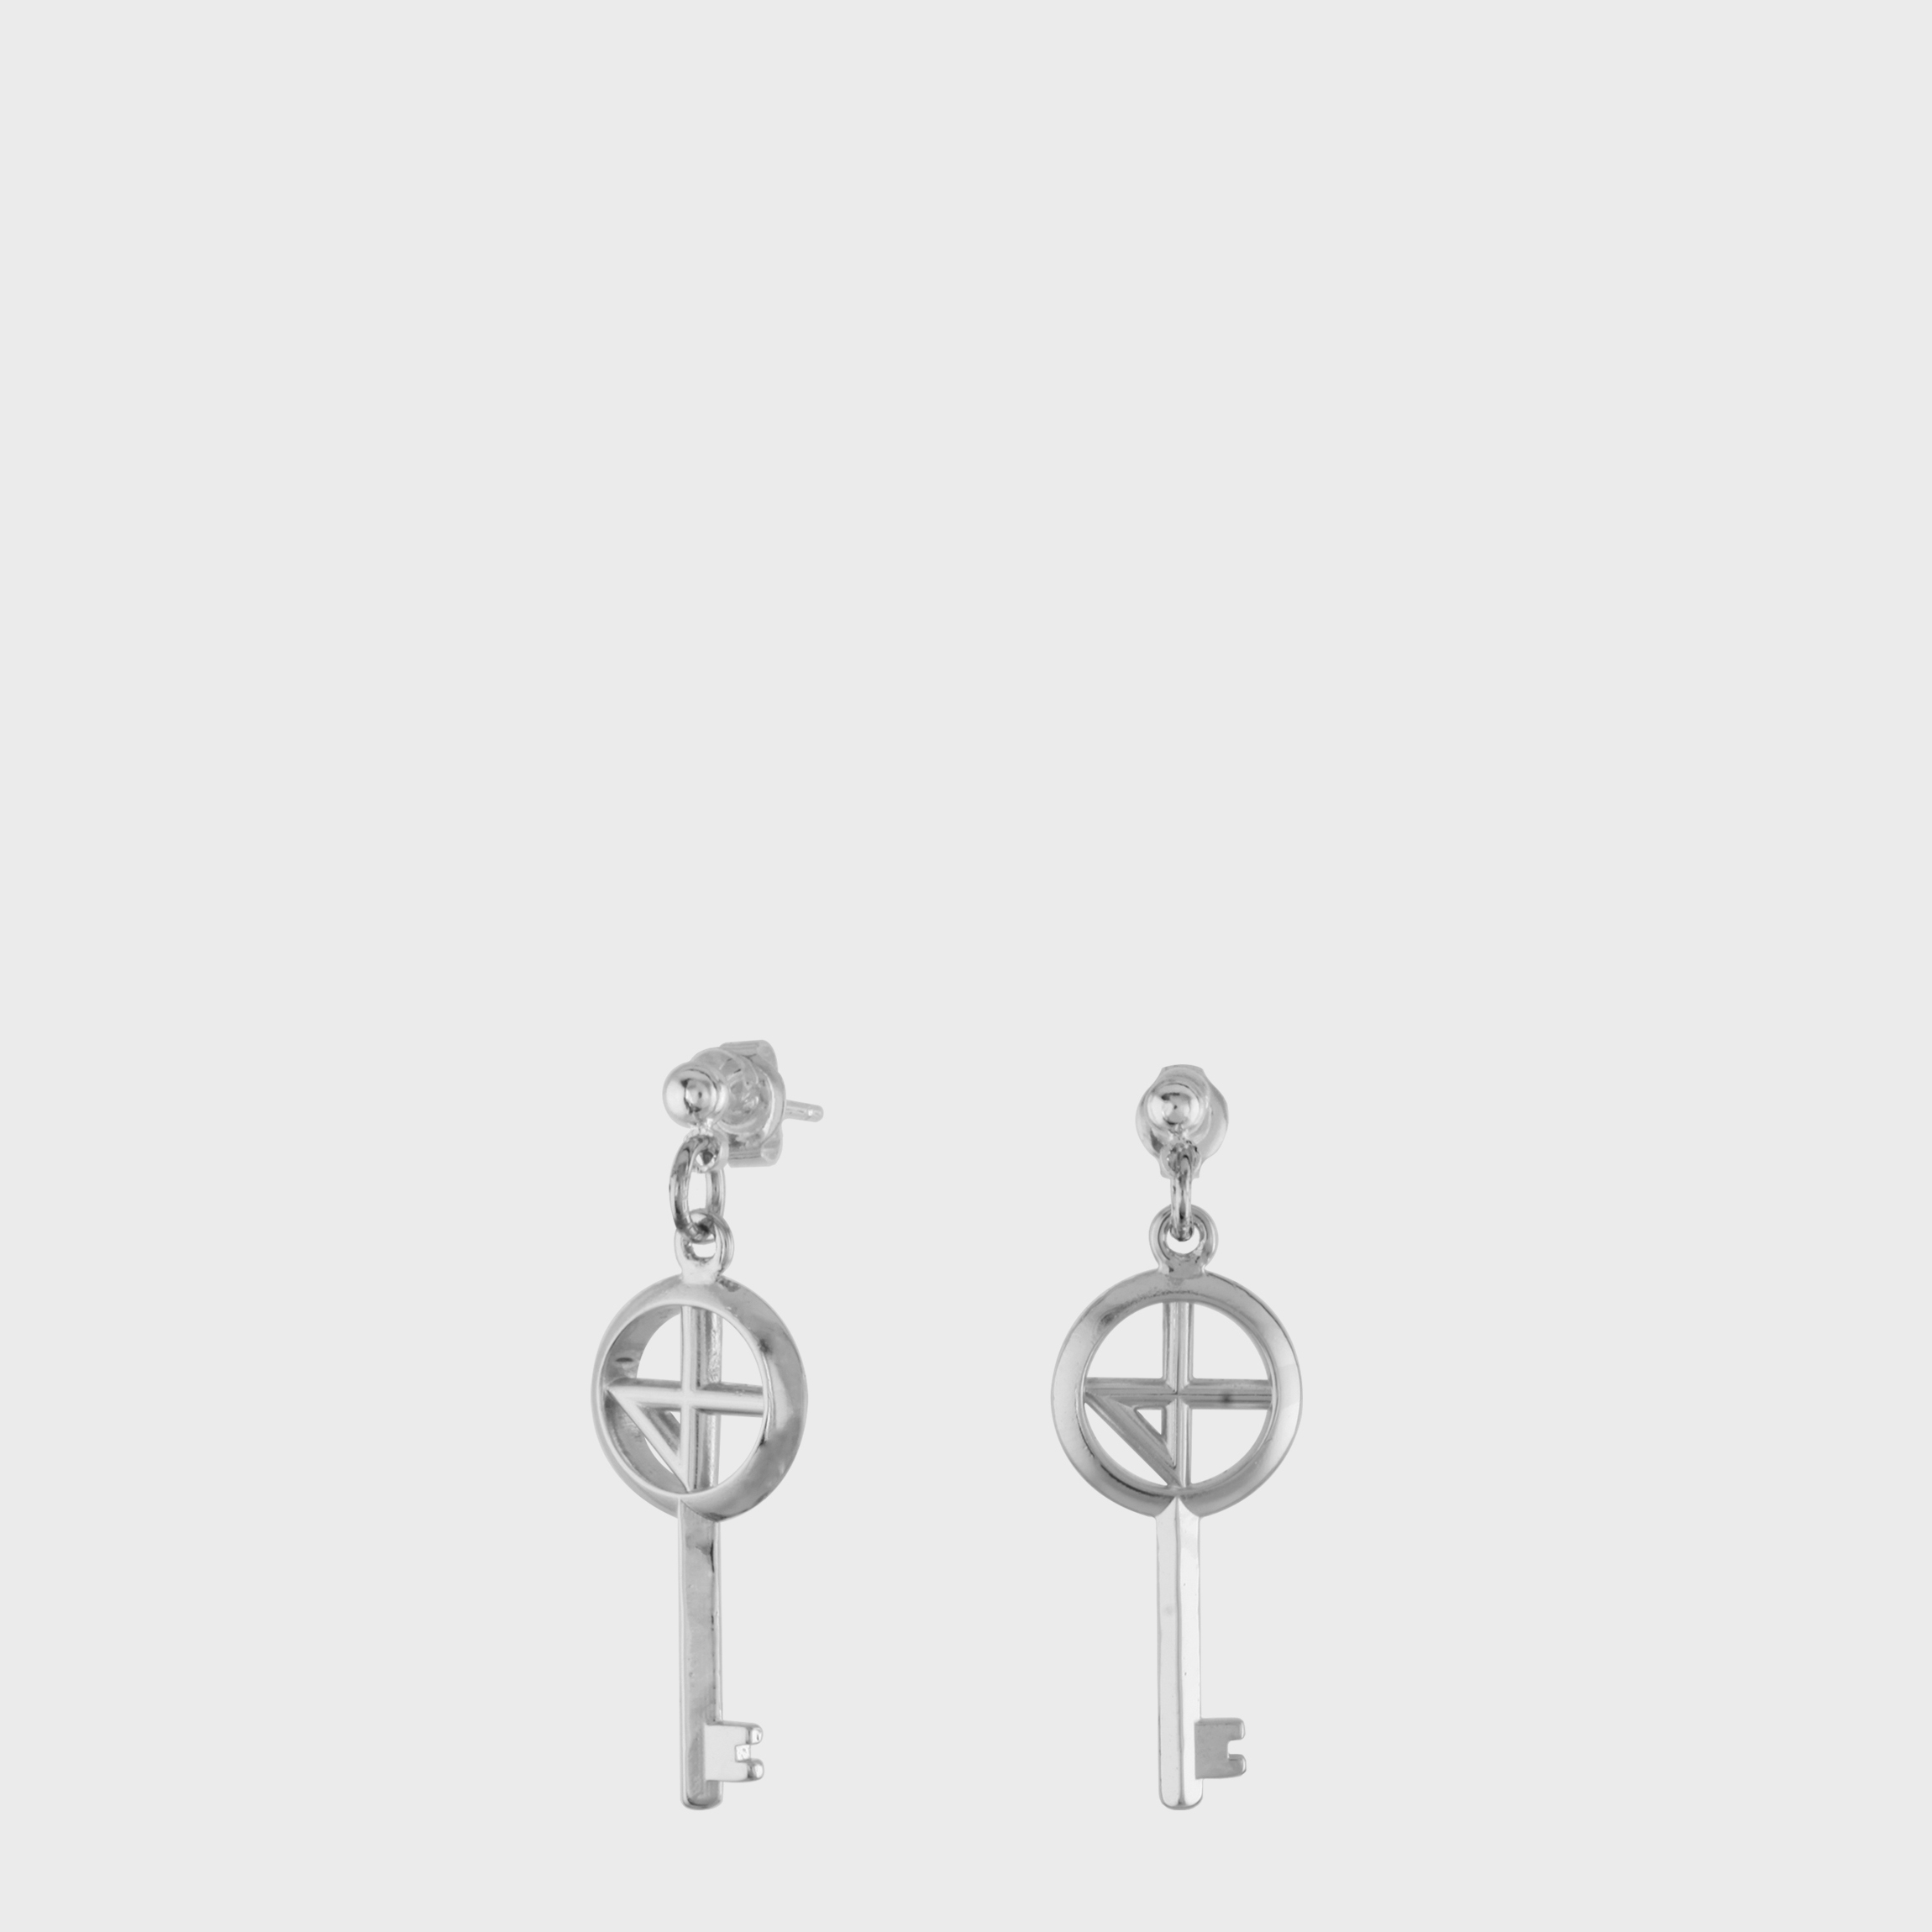 [논논] COMPASS KEY01 EAR